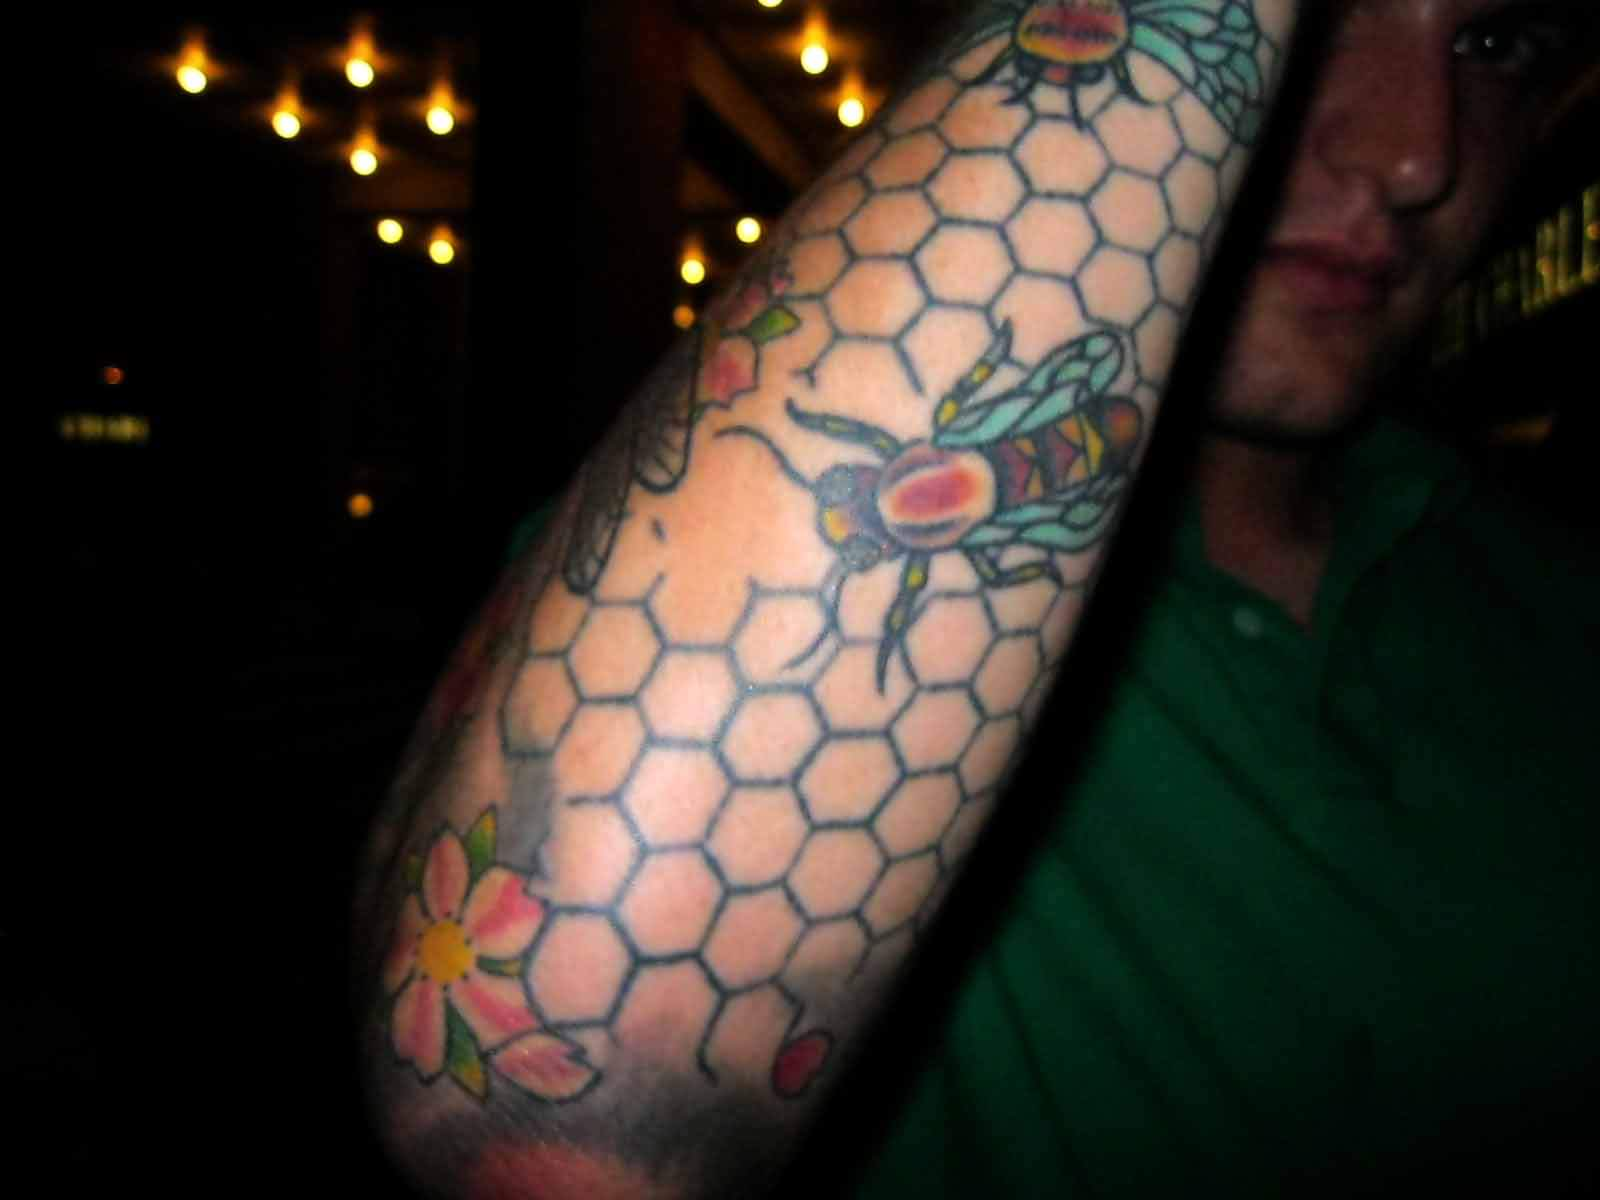 My Colorful Bees And Flower Tattoo On Arm